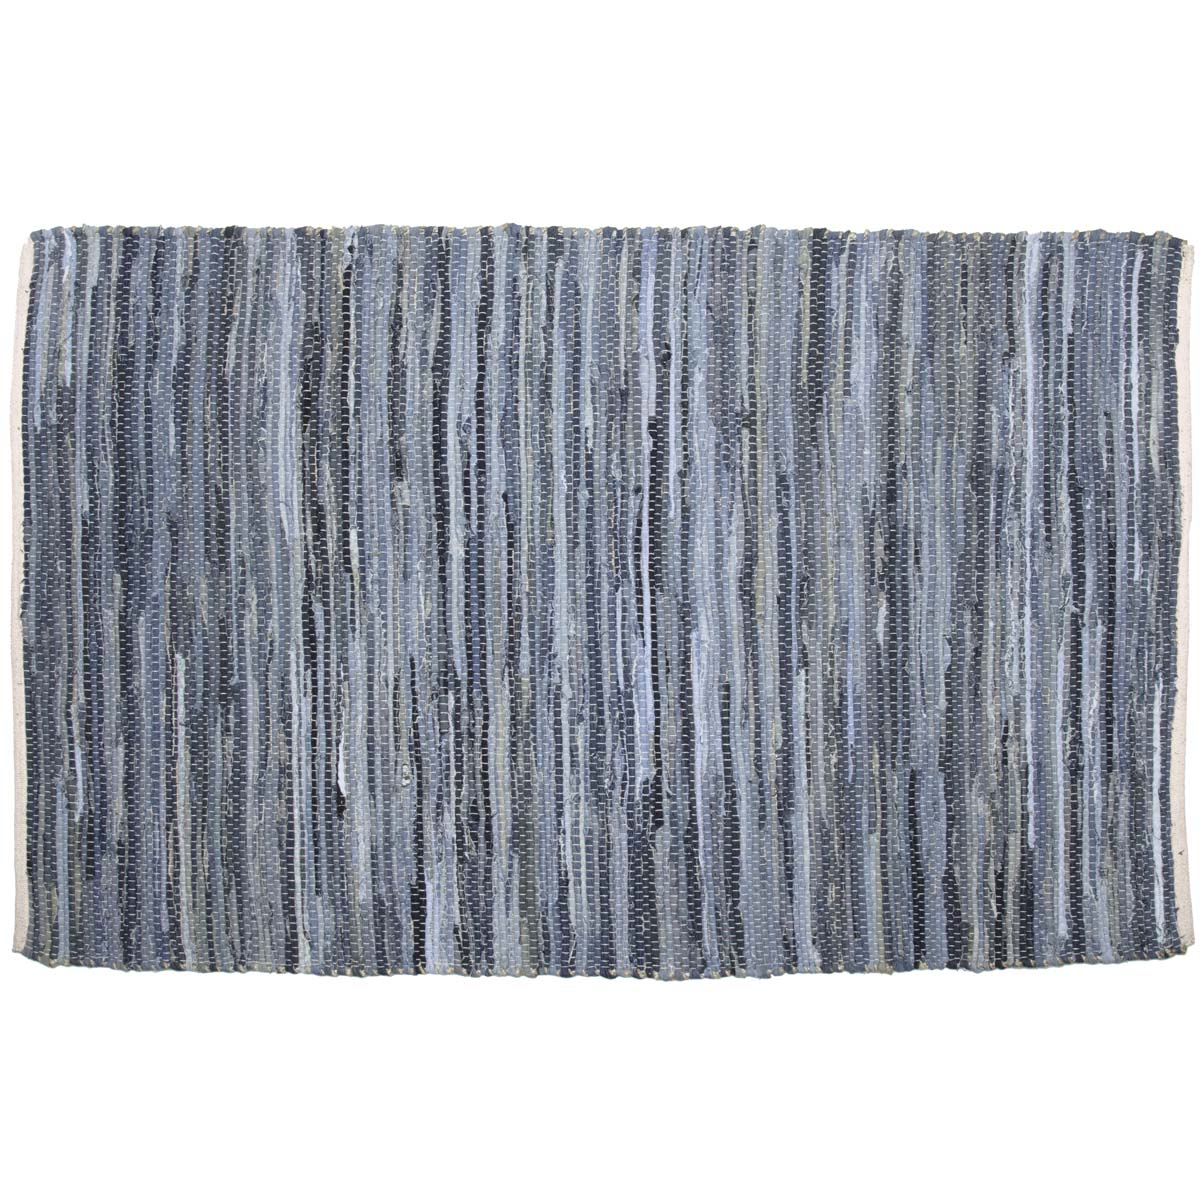 Denim & Hemp Chindi-Rag Rug Rect 48x72 - Woodrol